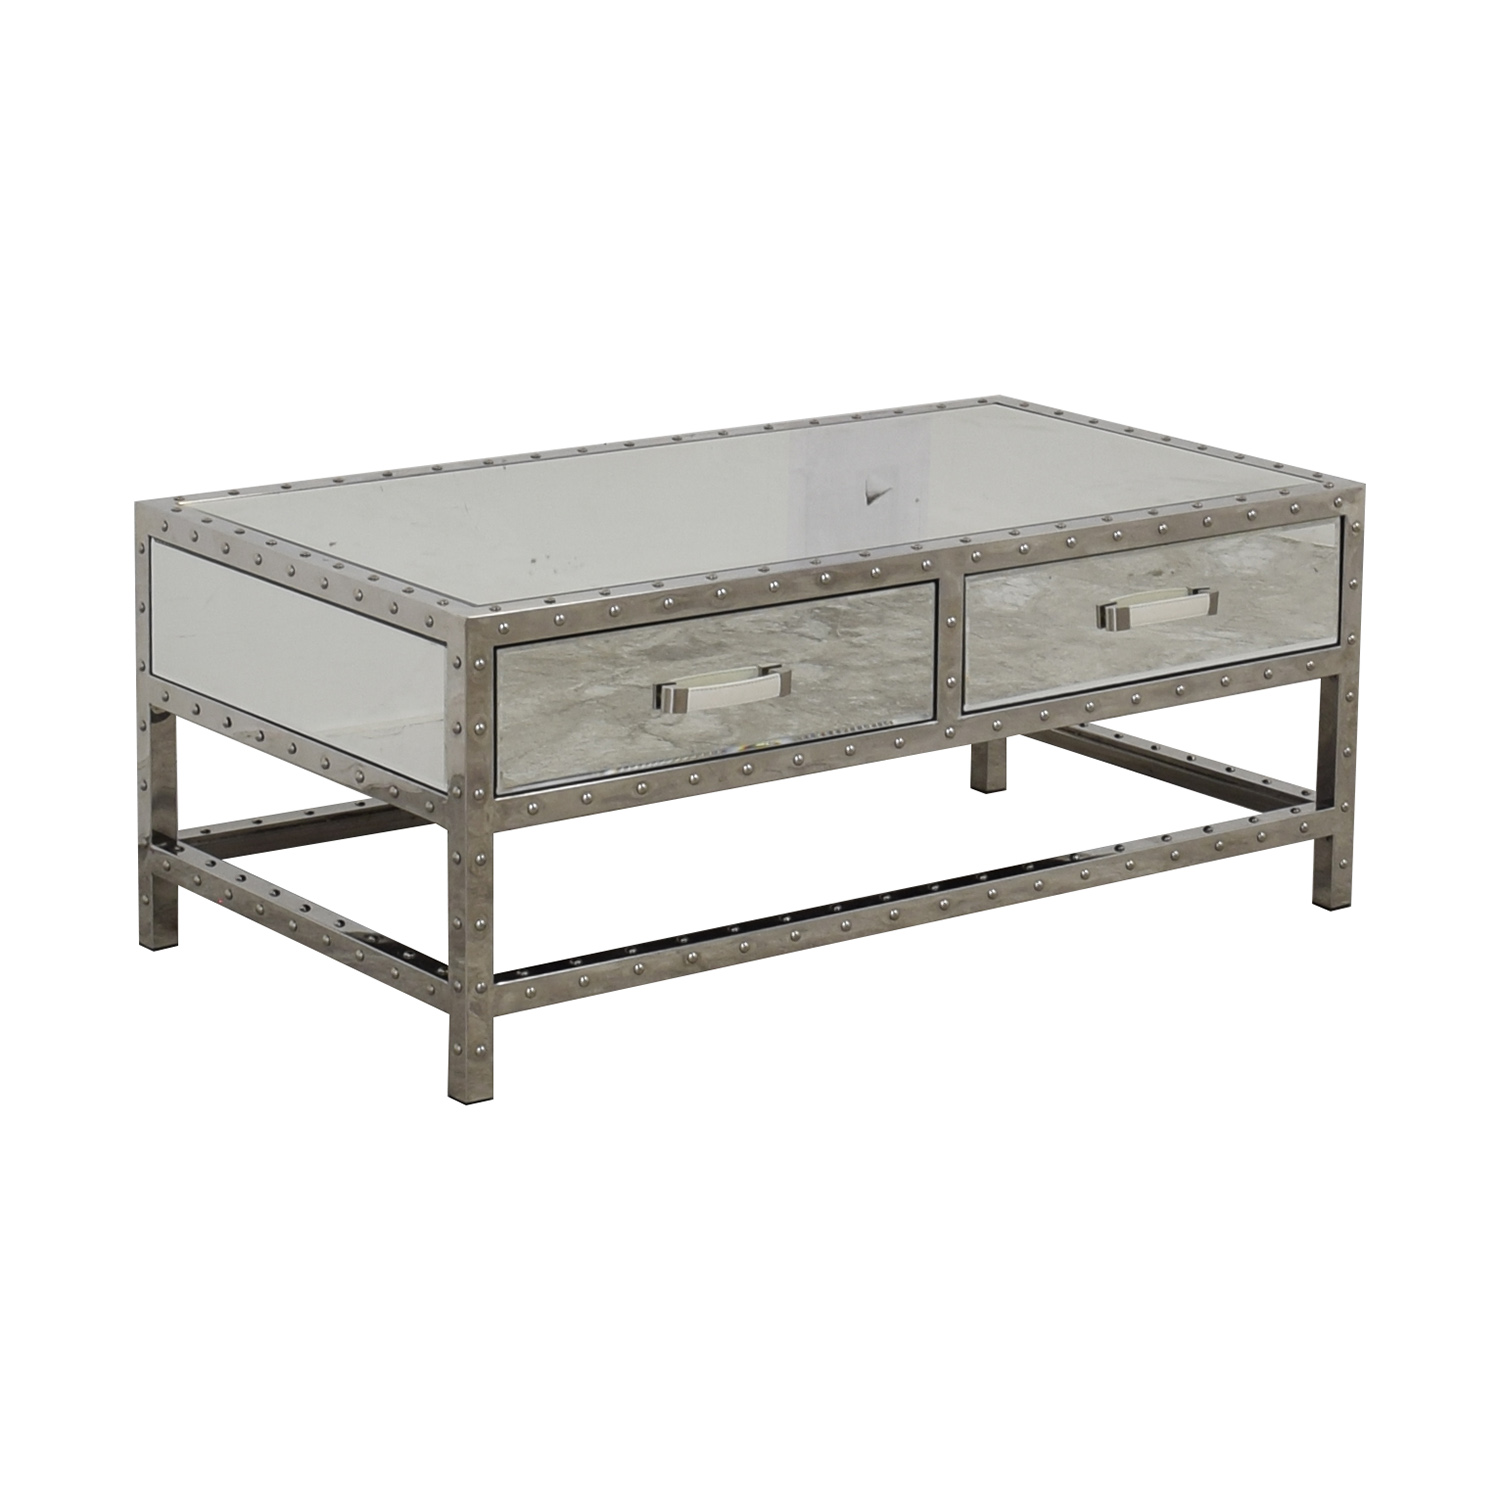 Modani Modani Valentino Mirror and Chrome Coffee Table nj